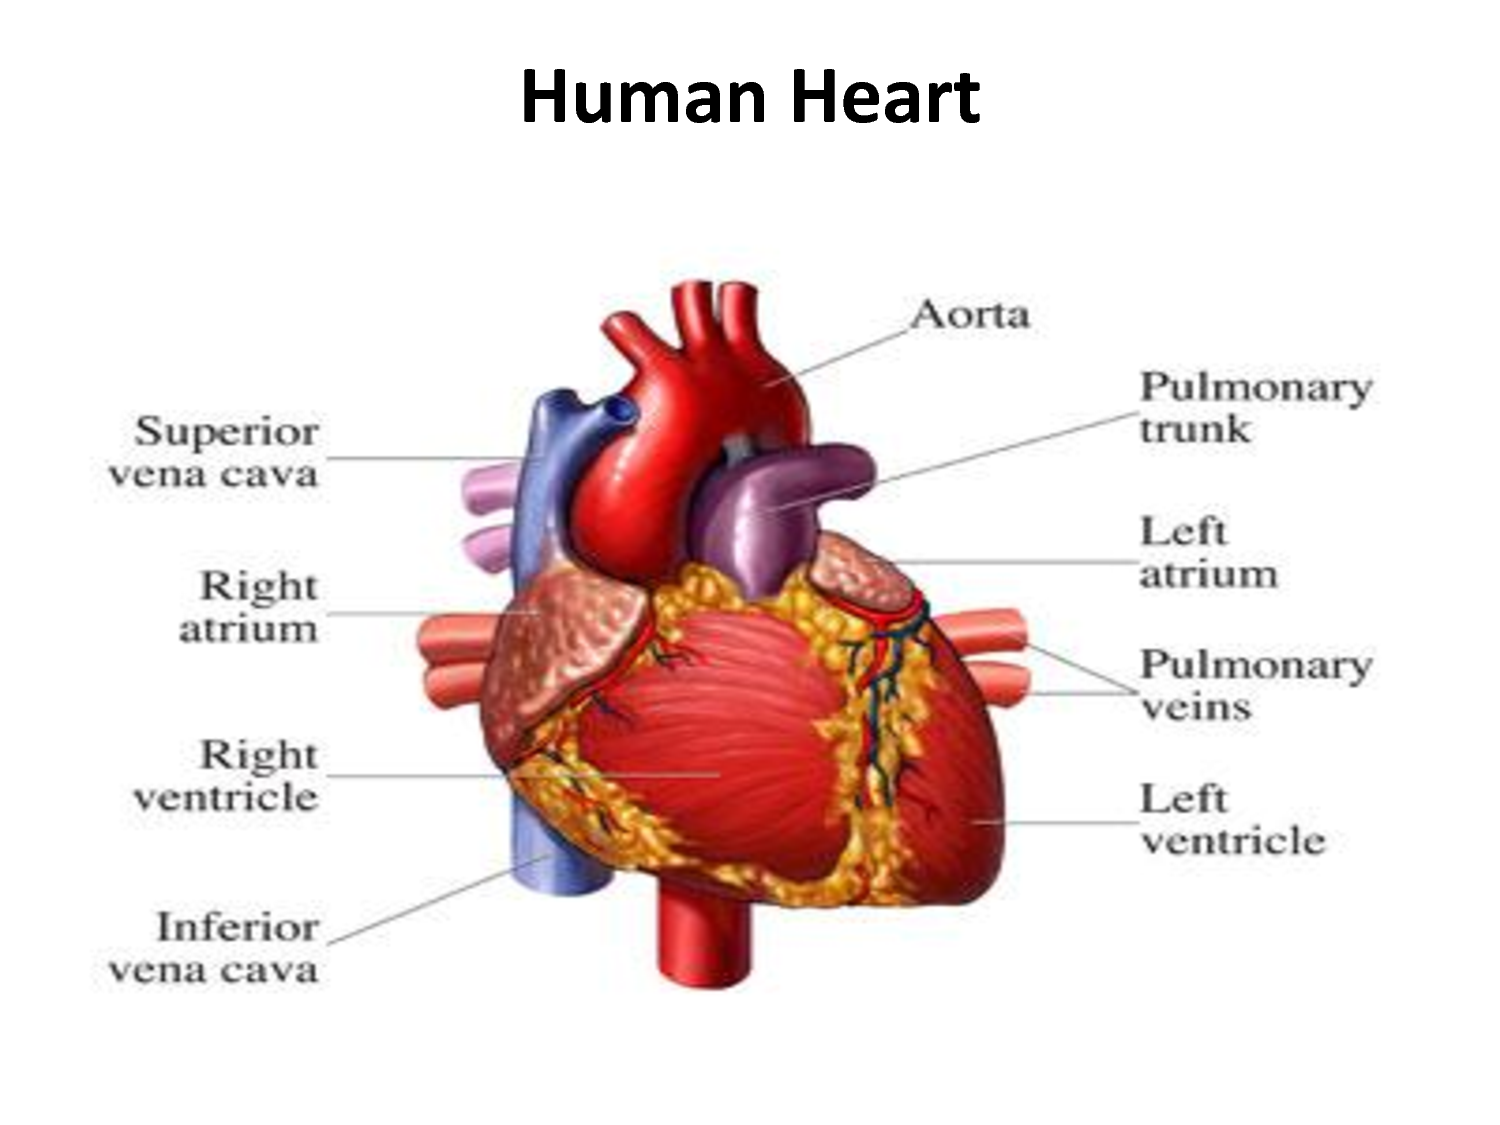 the heart of a human The human heart is an organ that pumps blood throughout the body via the circulatory system, supplying oxygen and nutrients to the tissues and removing carbon dioxide and other wastes.